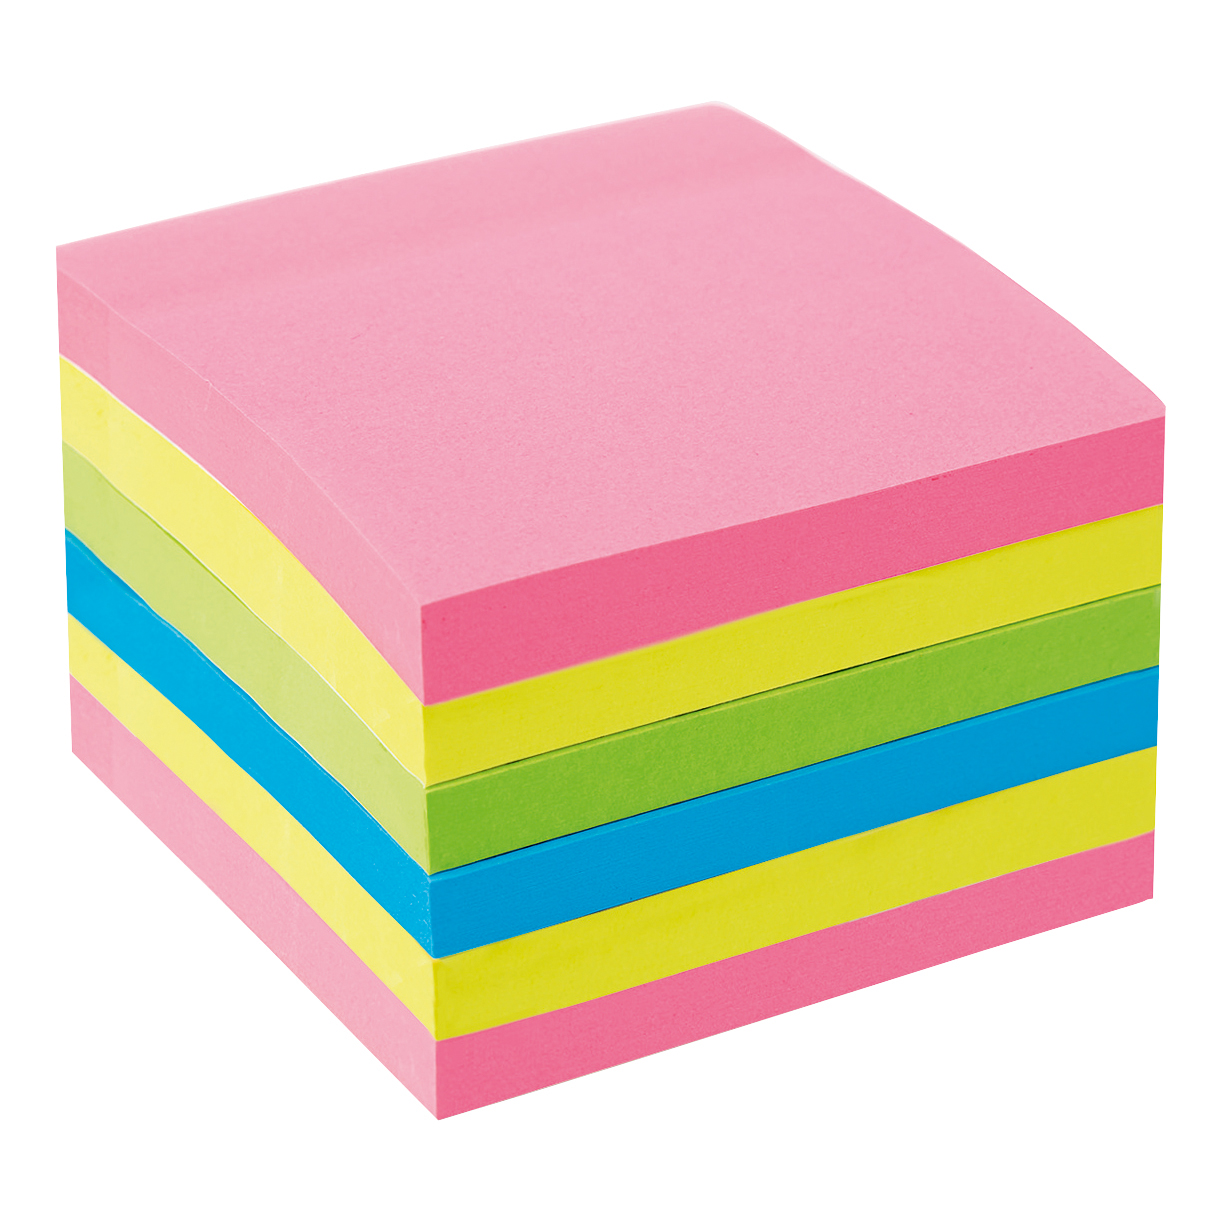 5 Star Office Extra Sticky Re-Move Notes 76x76mm Assorted Neon Colours [Pack 6] [3 For 2] Jul 2018